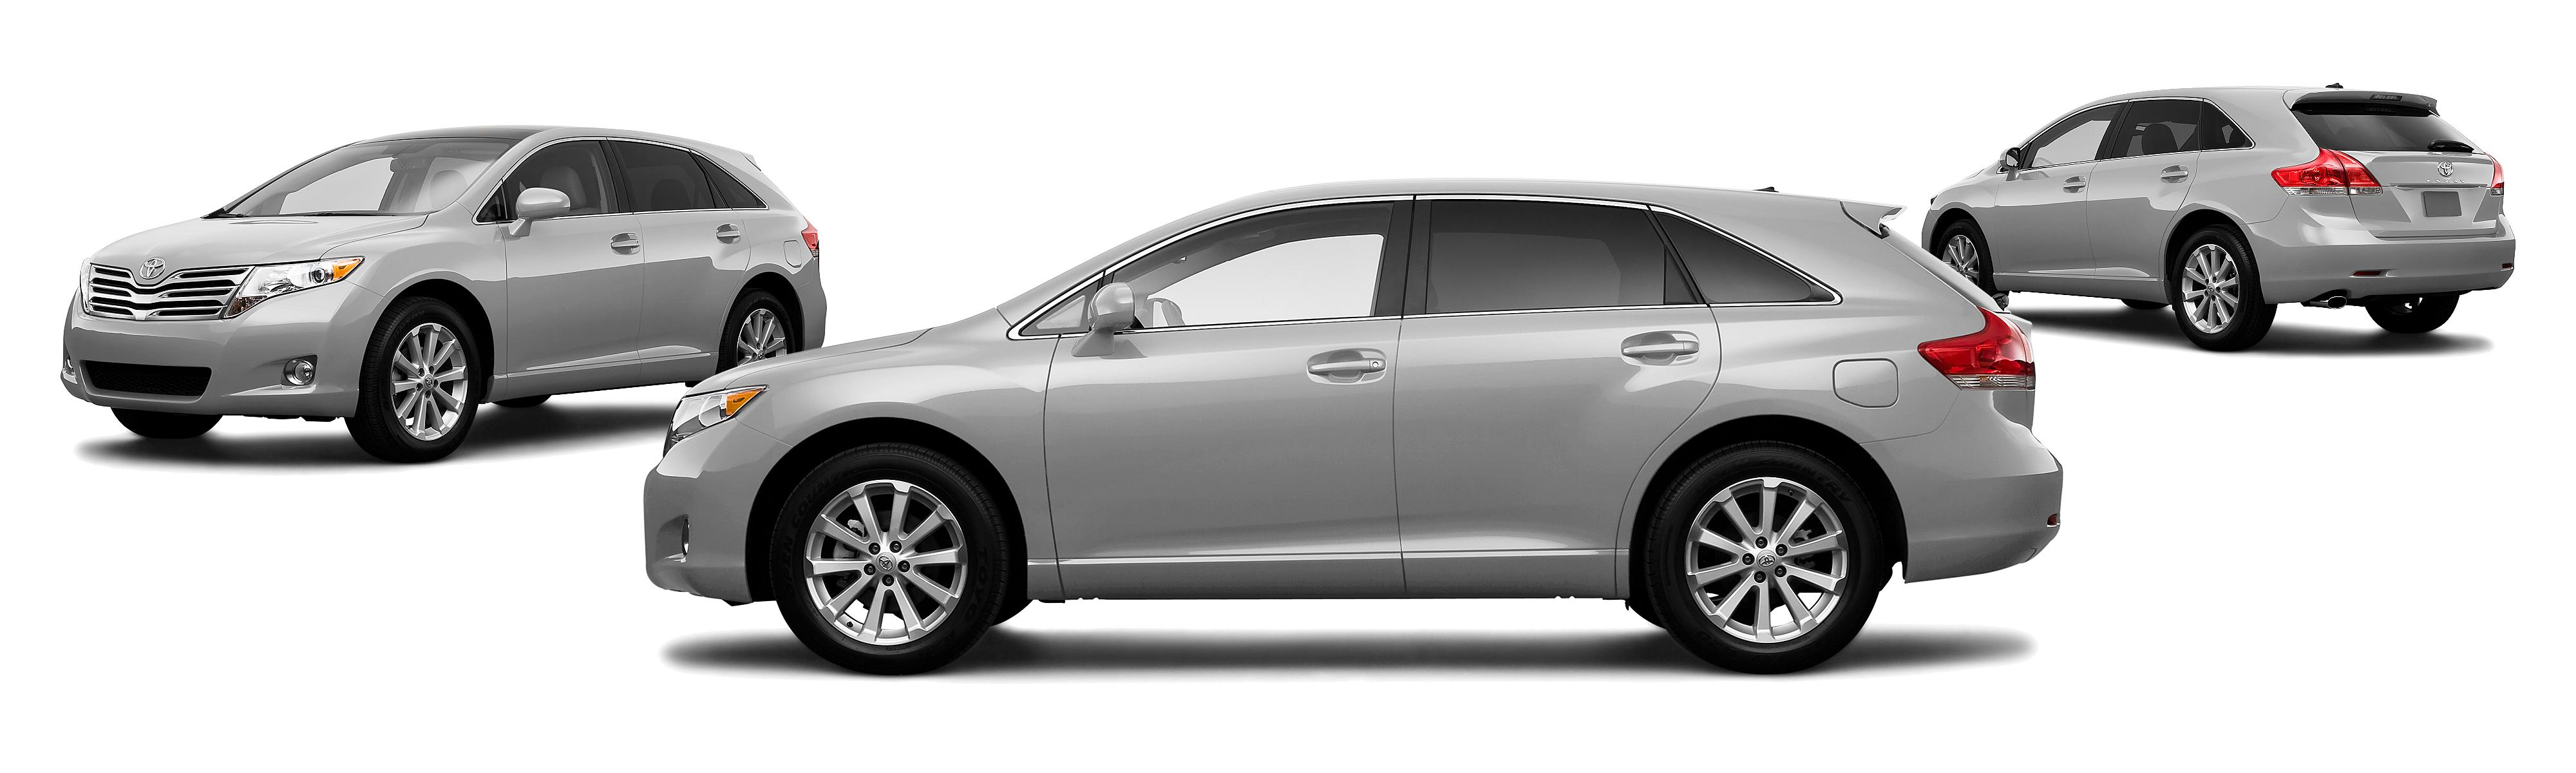 cars low date owner future for by usautomobile toyota venza miles release awd xle